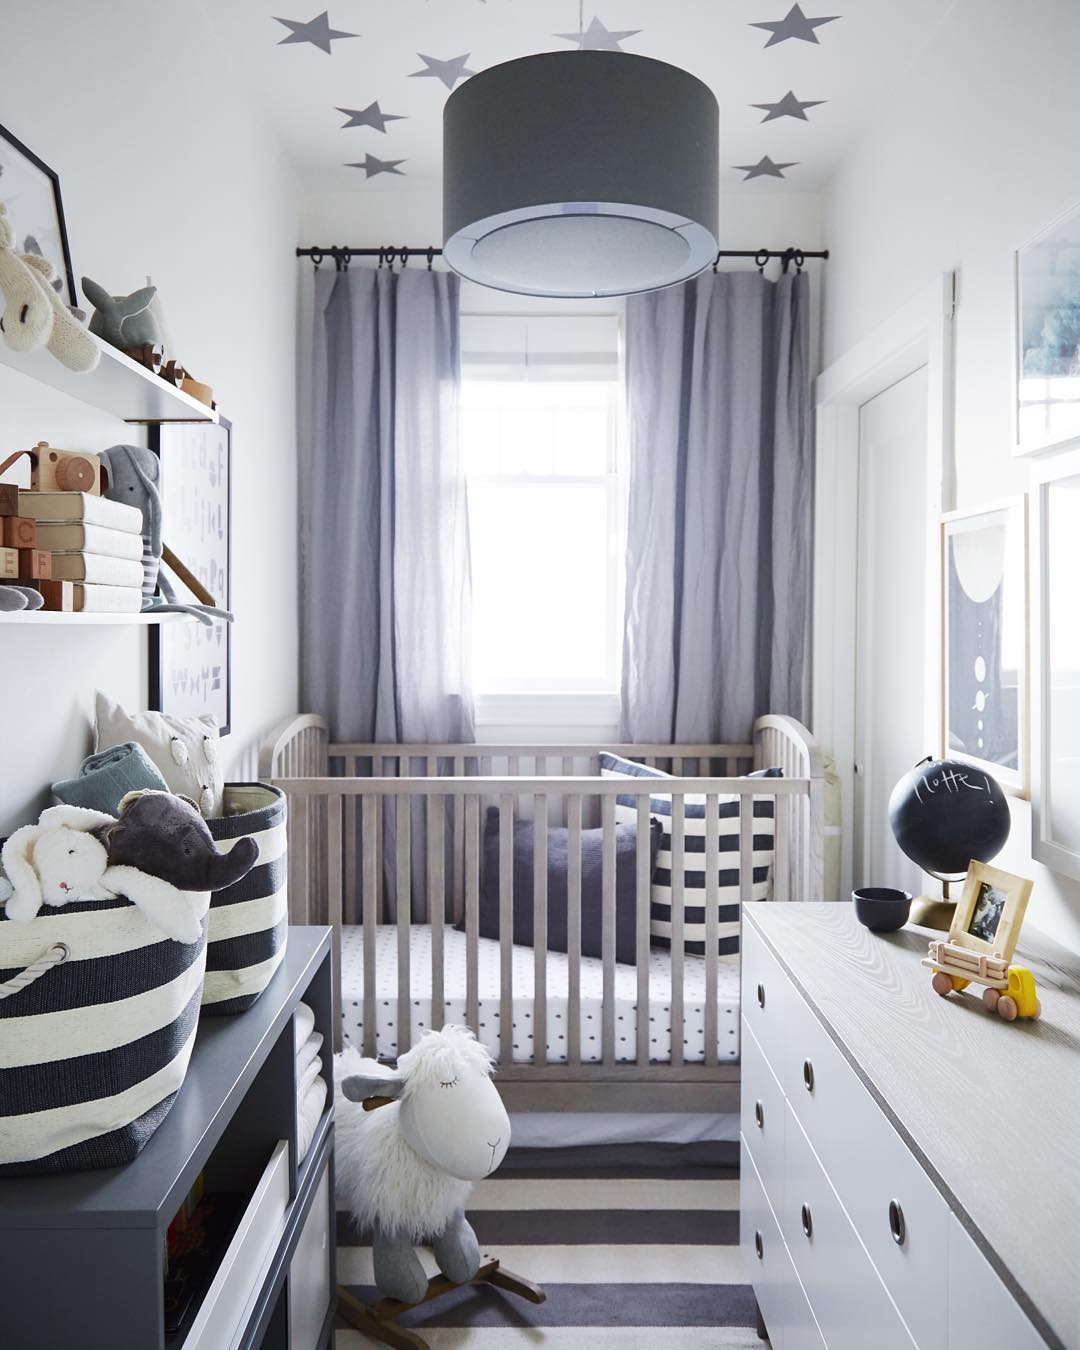 Baby Nurseries For Small Rooms (Image credit: Crystal Palecek)